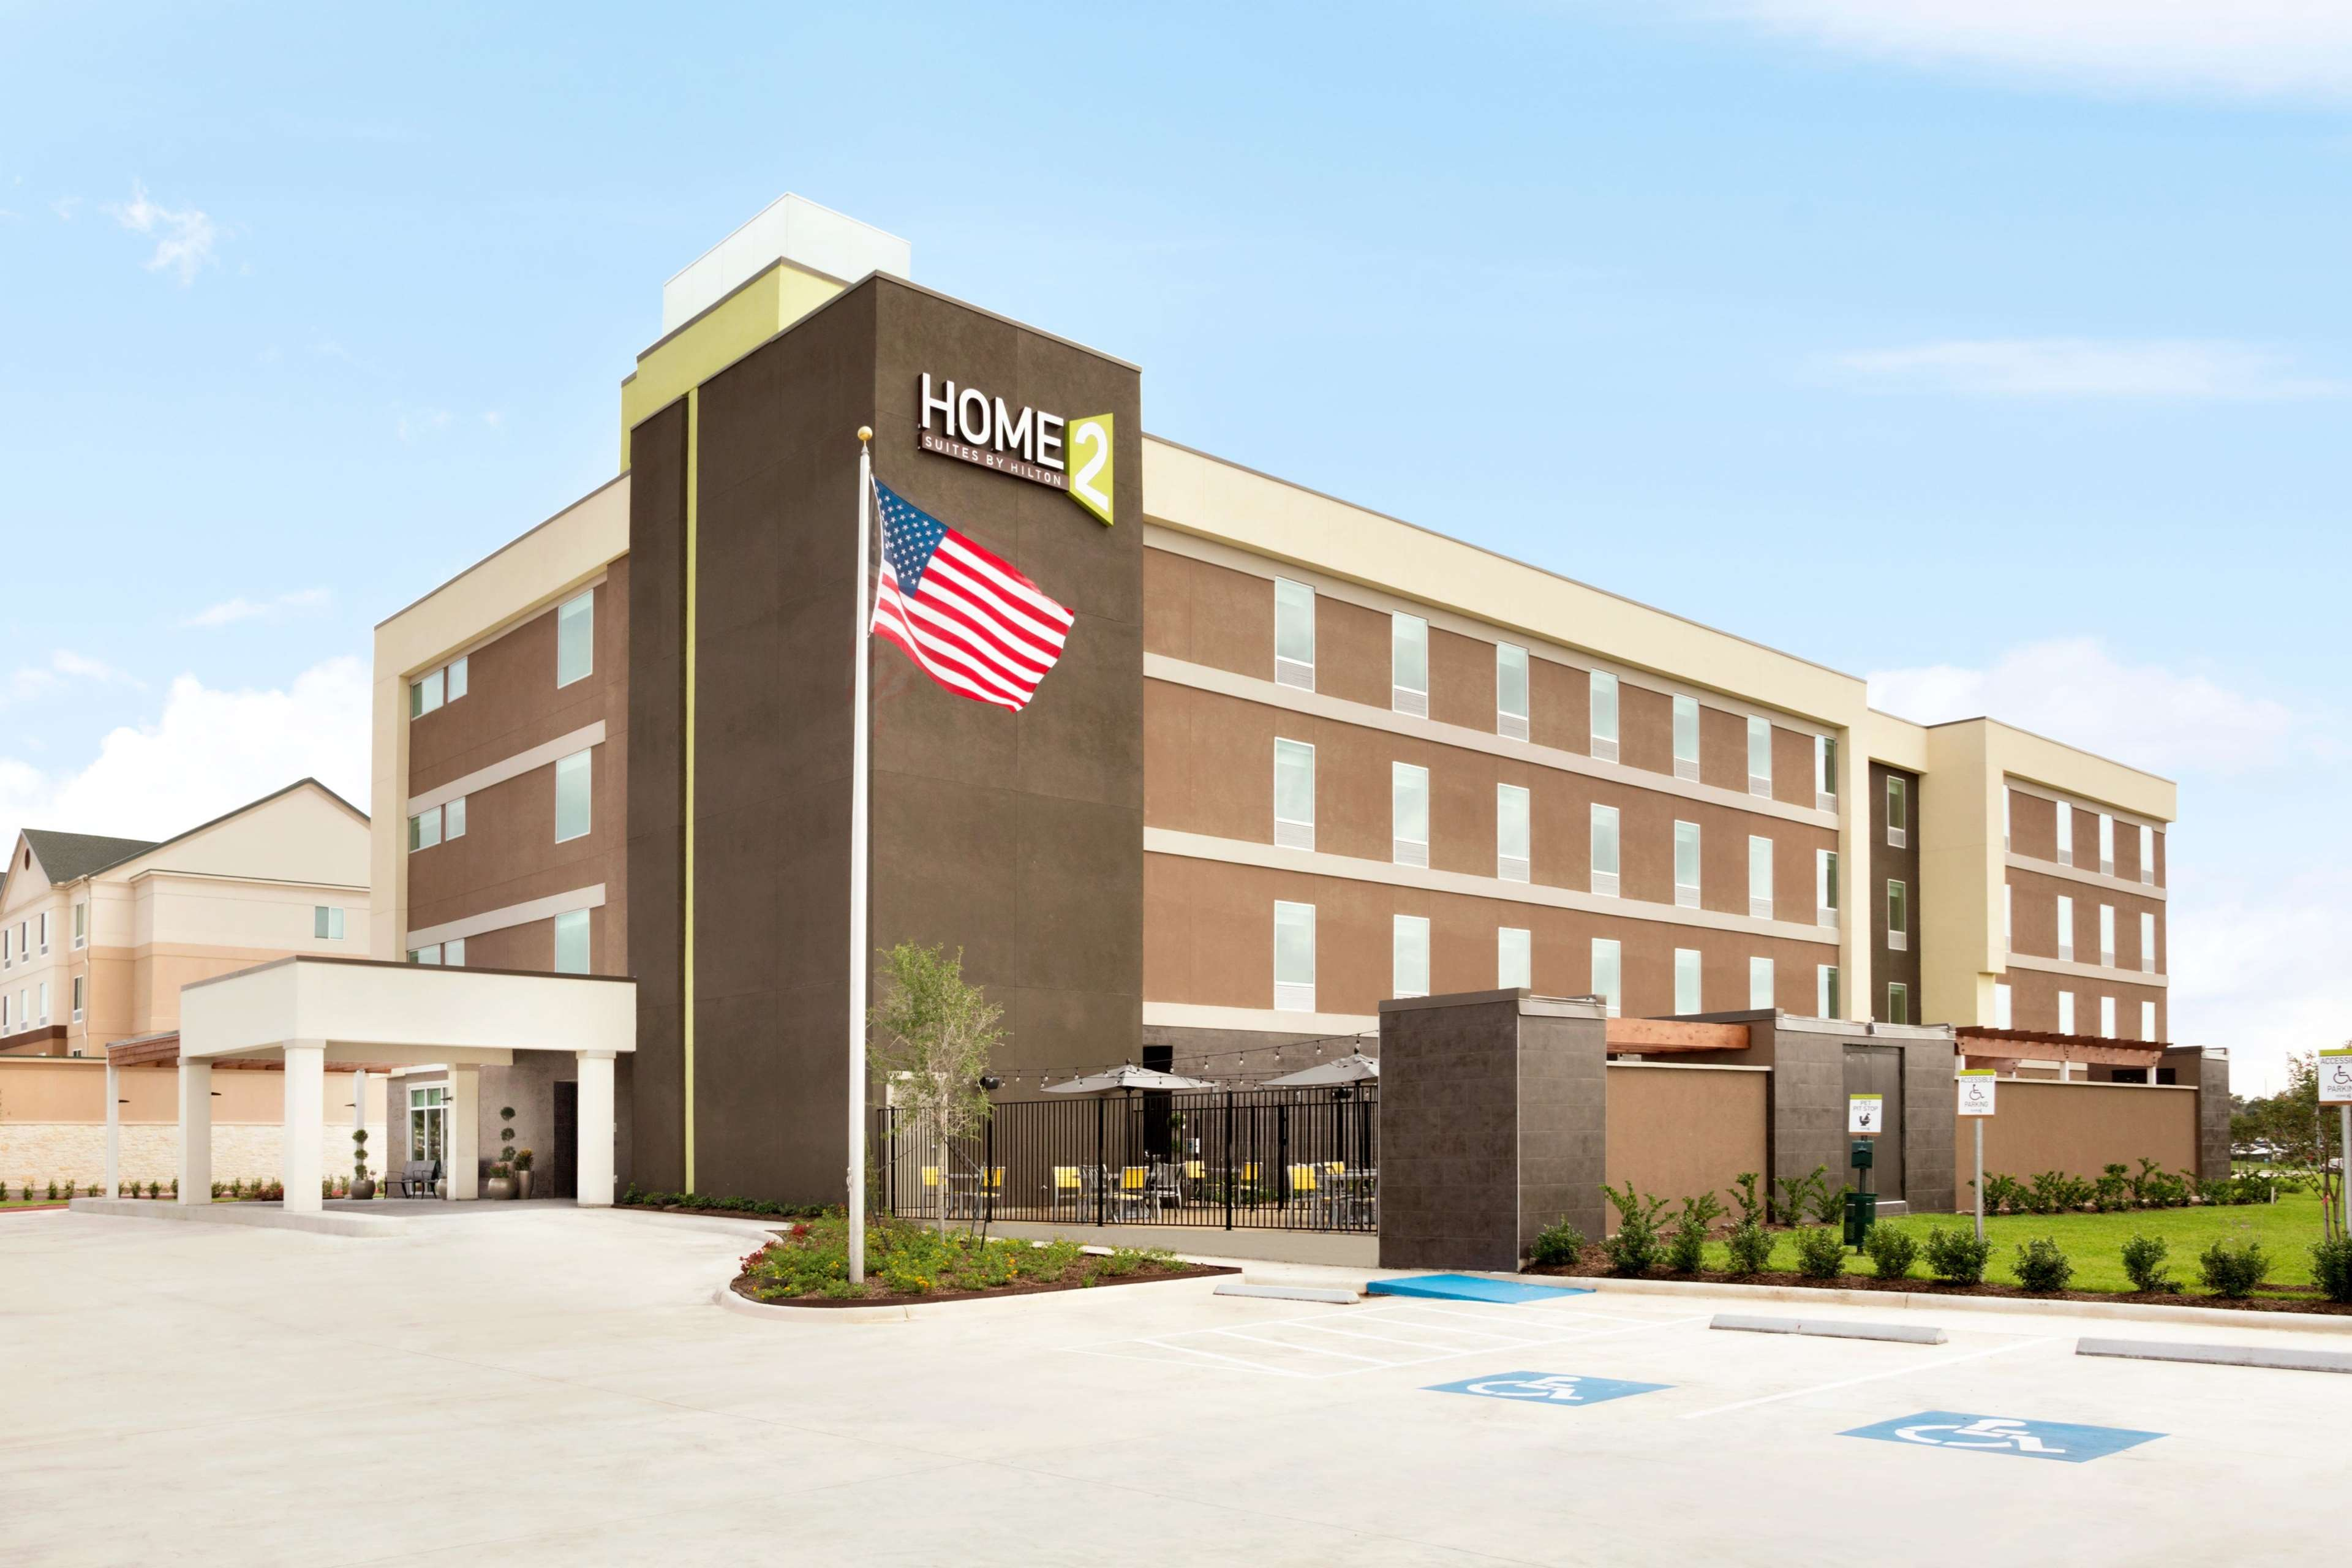 Home2 Suites By Hilton Houston  Webster  Webster Texas  Tx